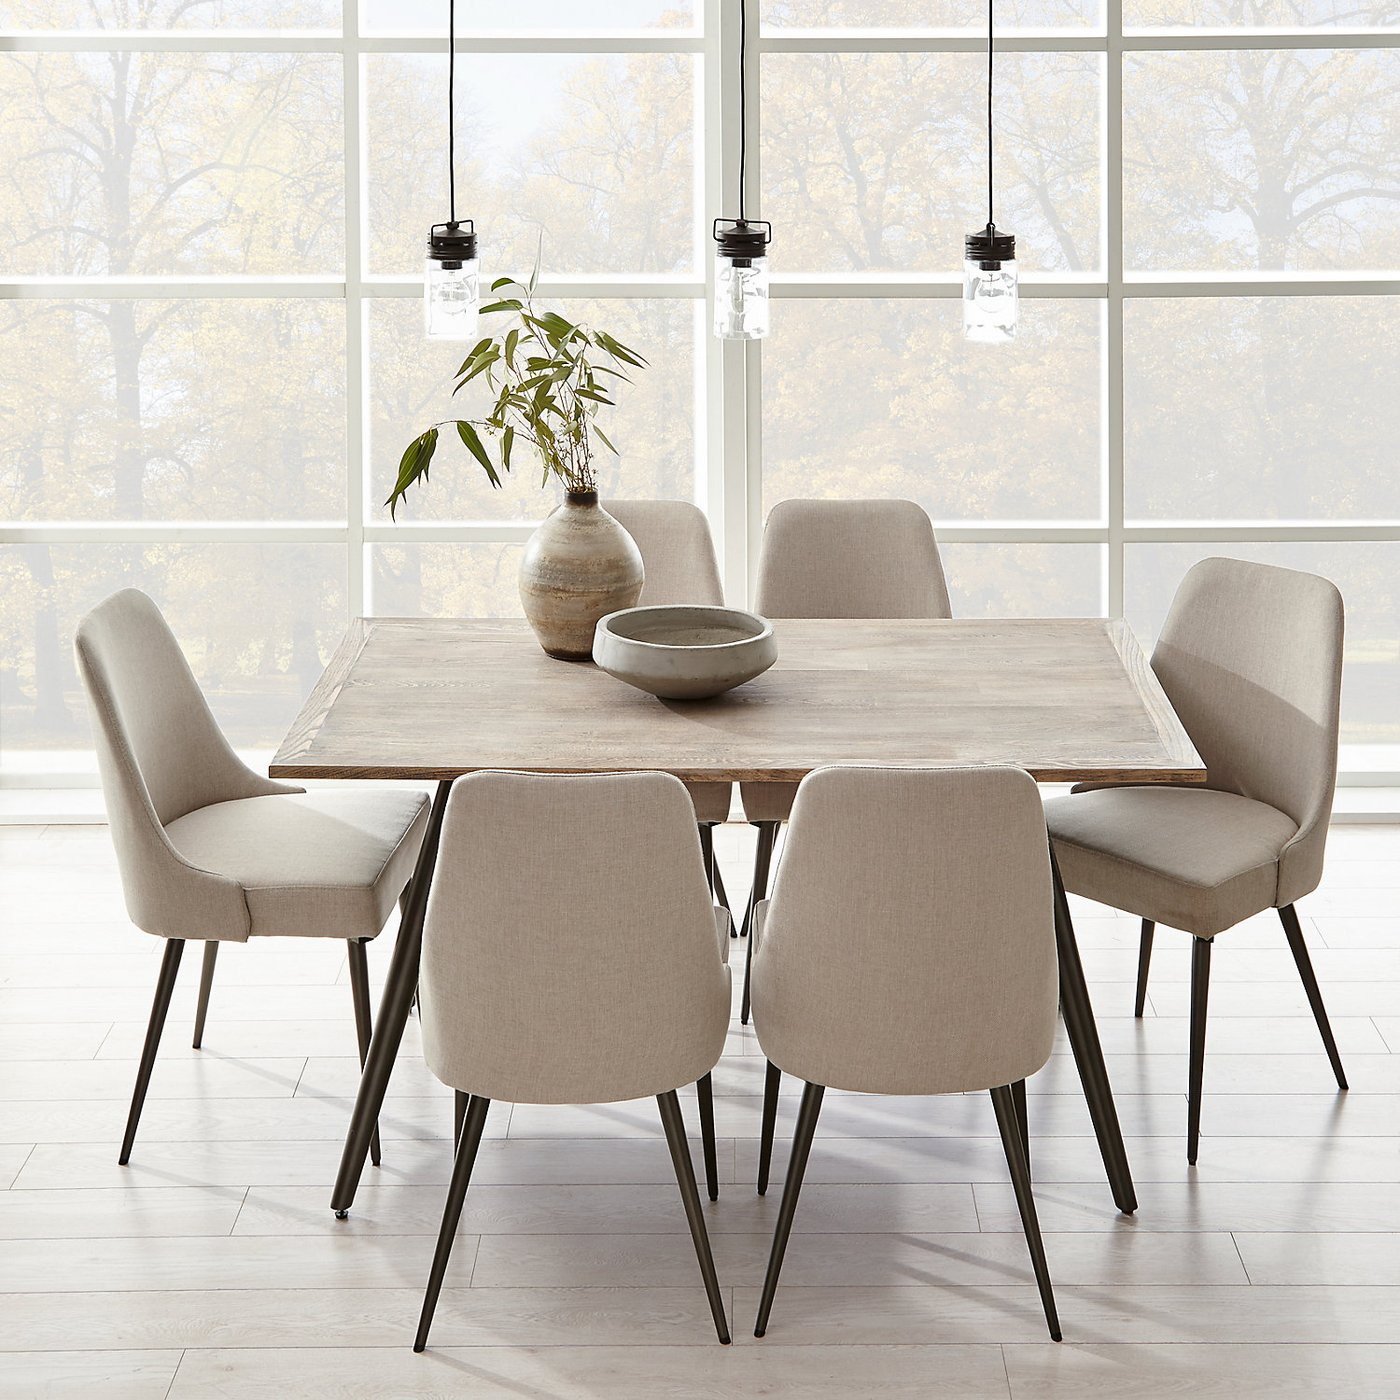 Macsen 5-Piece Dining Package